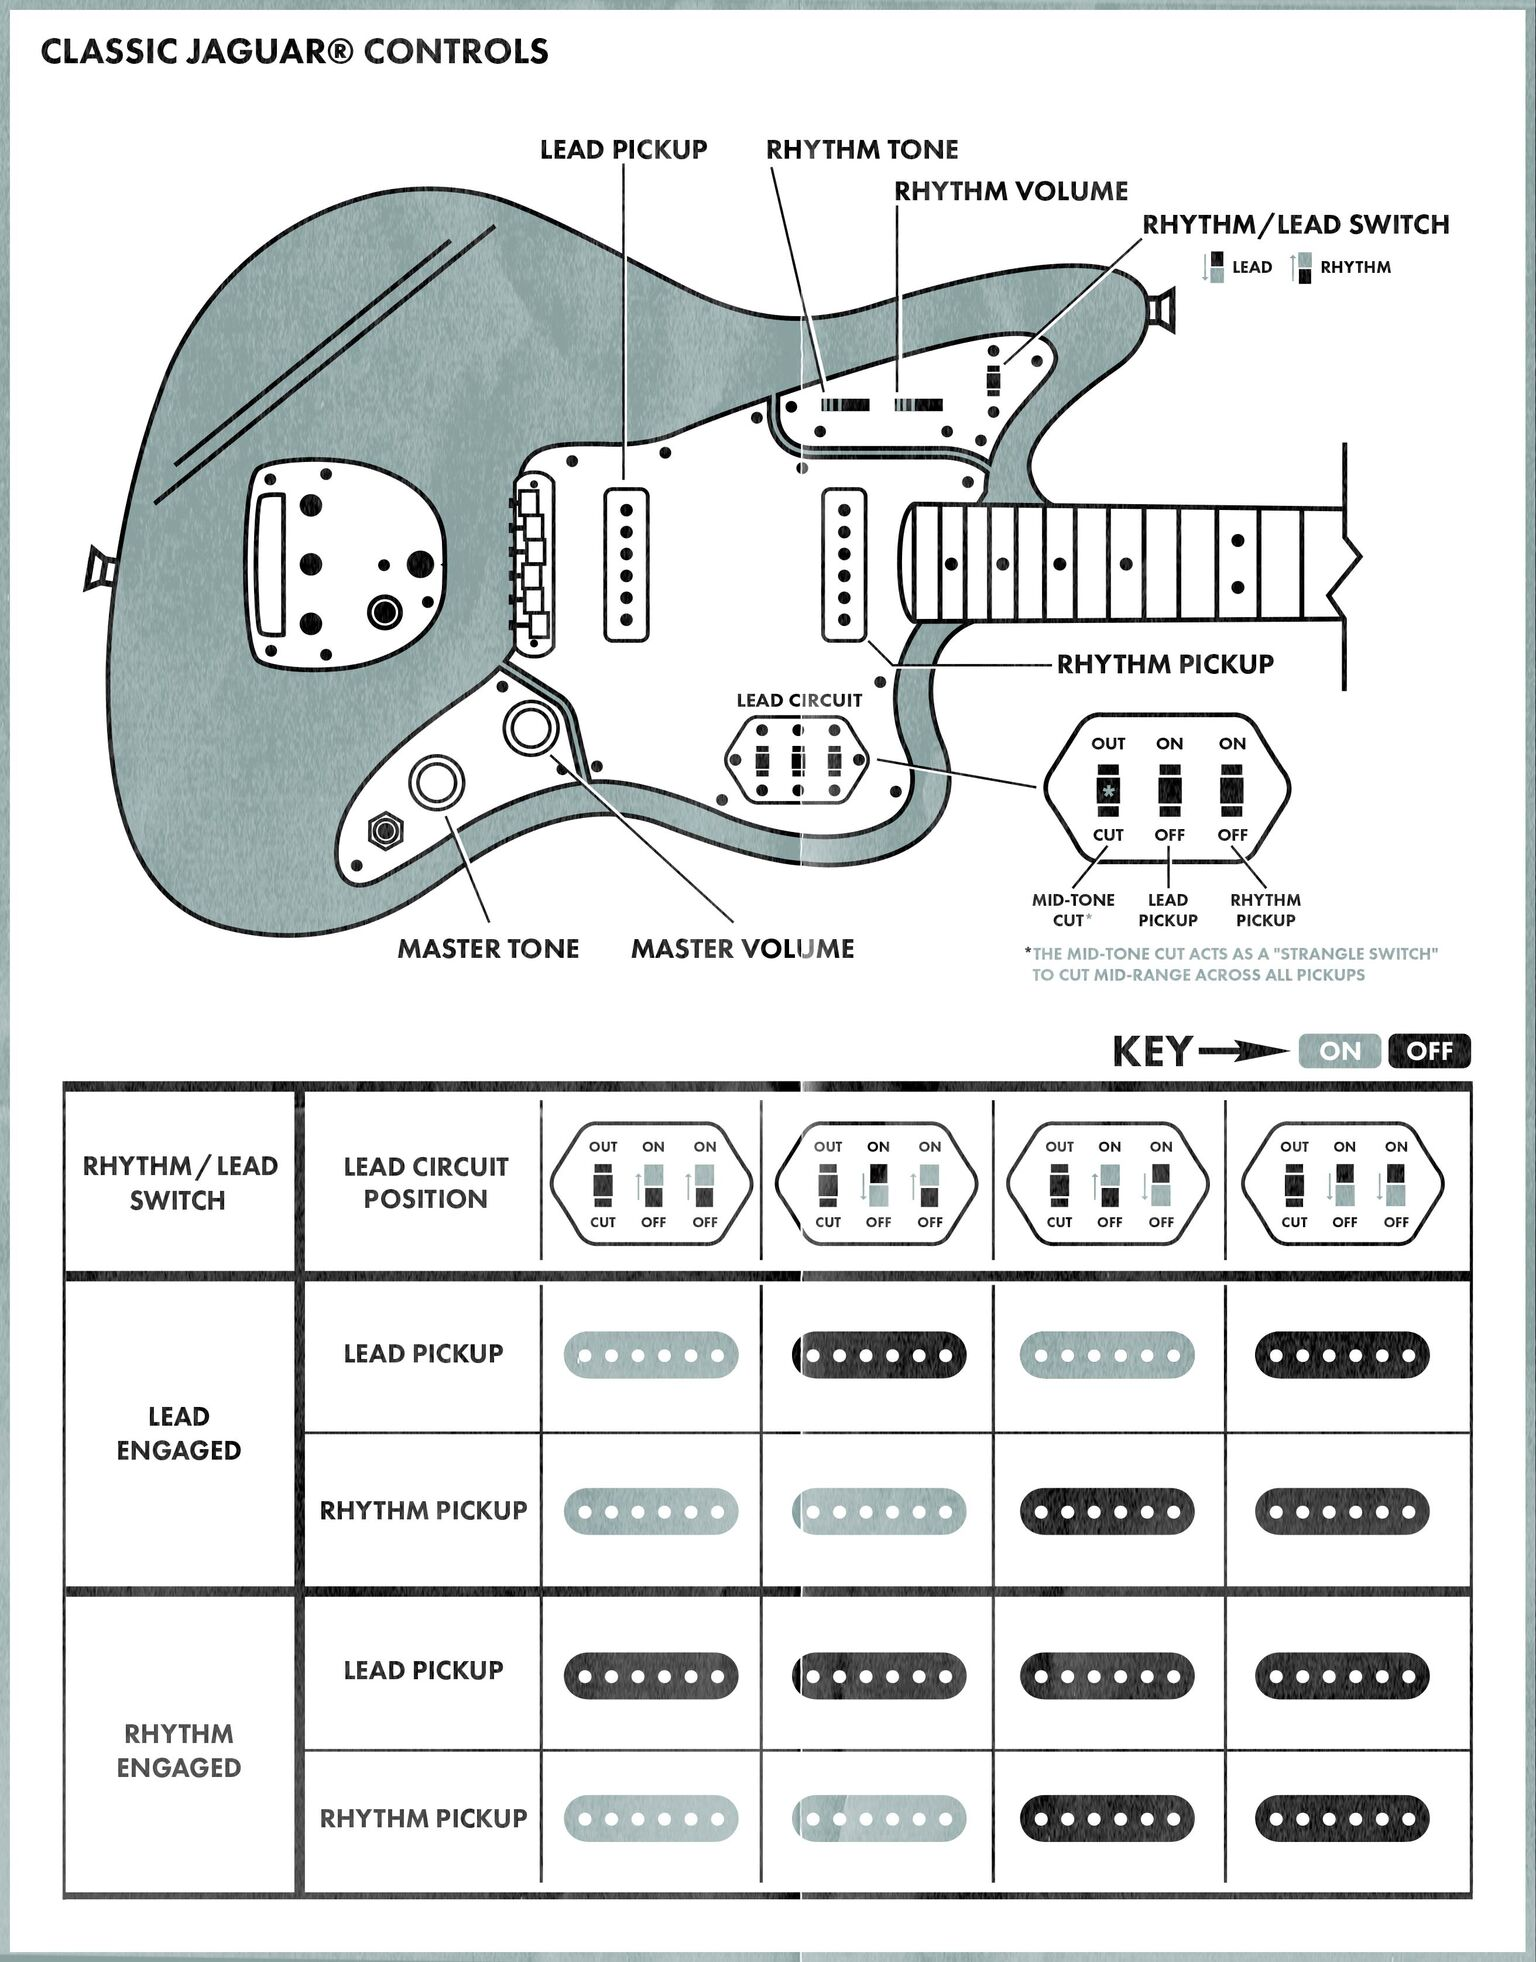 fender jaguar wiring diagram wiring diagram third leveljaguar controls explained fender jaguar squier jaguar wiring diagram fender jaguar wiring diagram